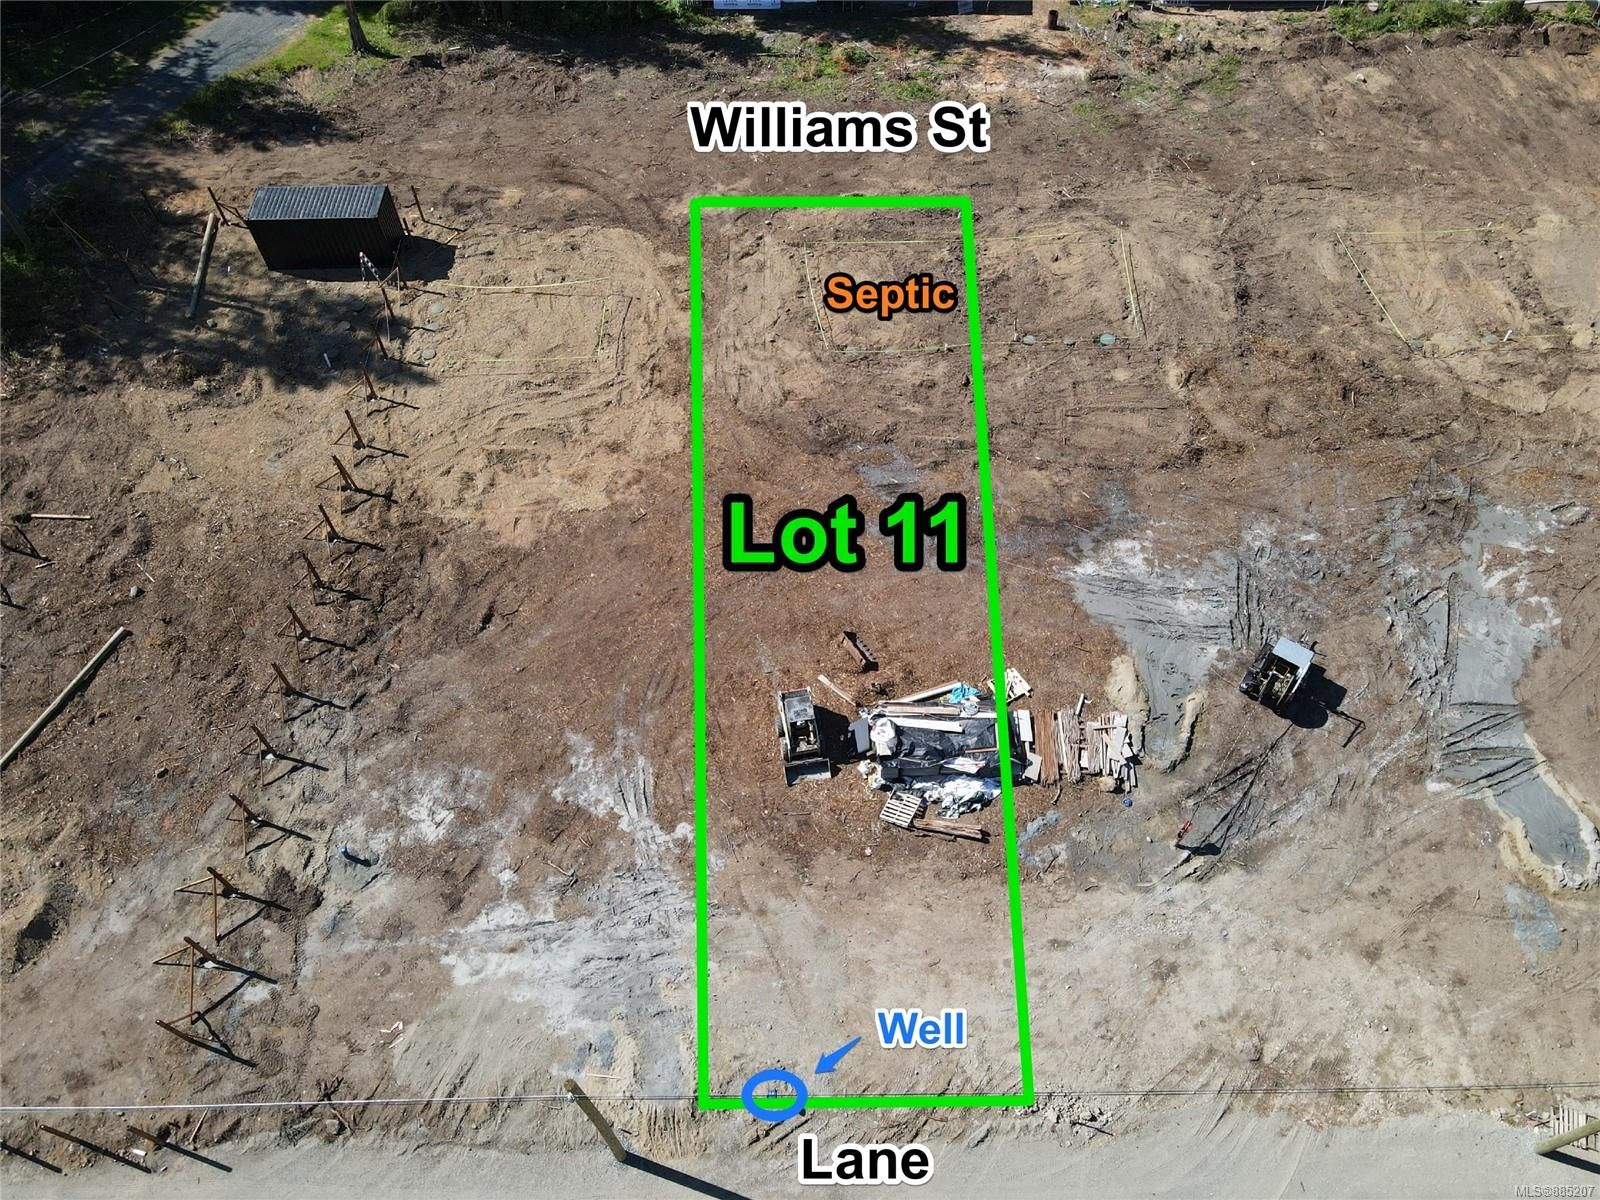 Main Photo: Lot 11 Williams St in : PQ Errington/Coombs/Hilliers Land for sale (Parksville/Qualicum)  : MLS®# 885207